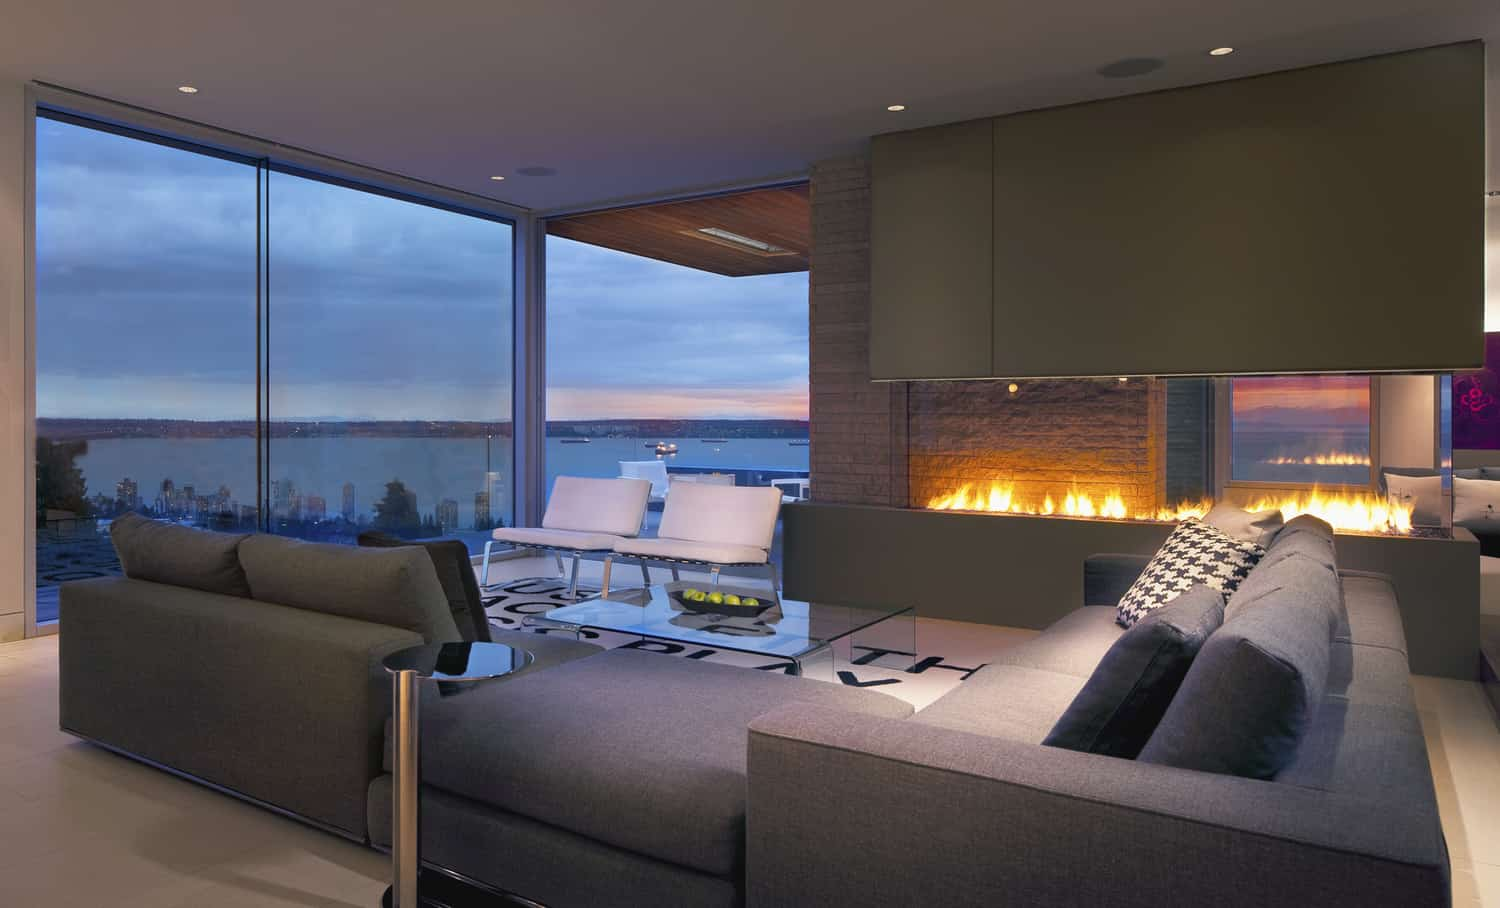 Living room with a view of the ocean and of the fire for The living room